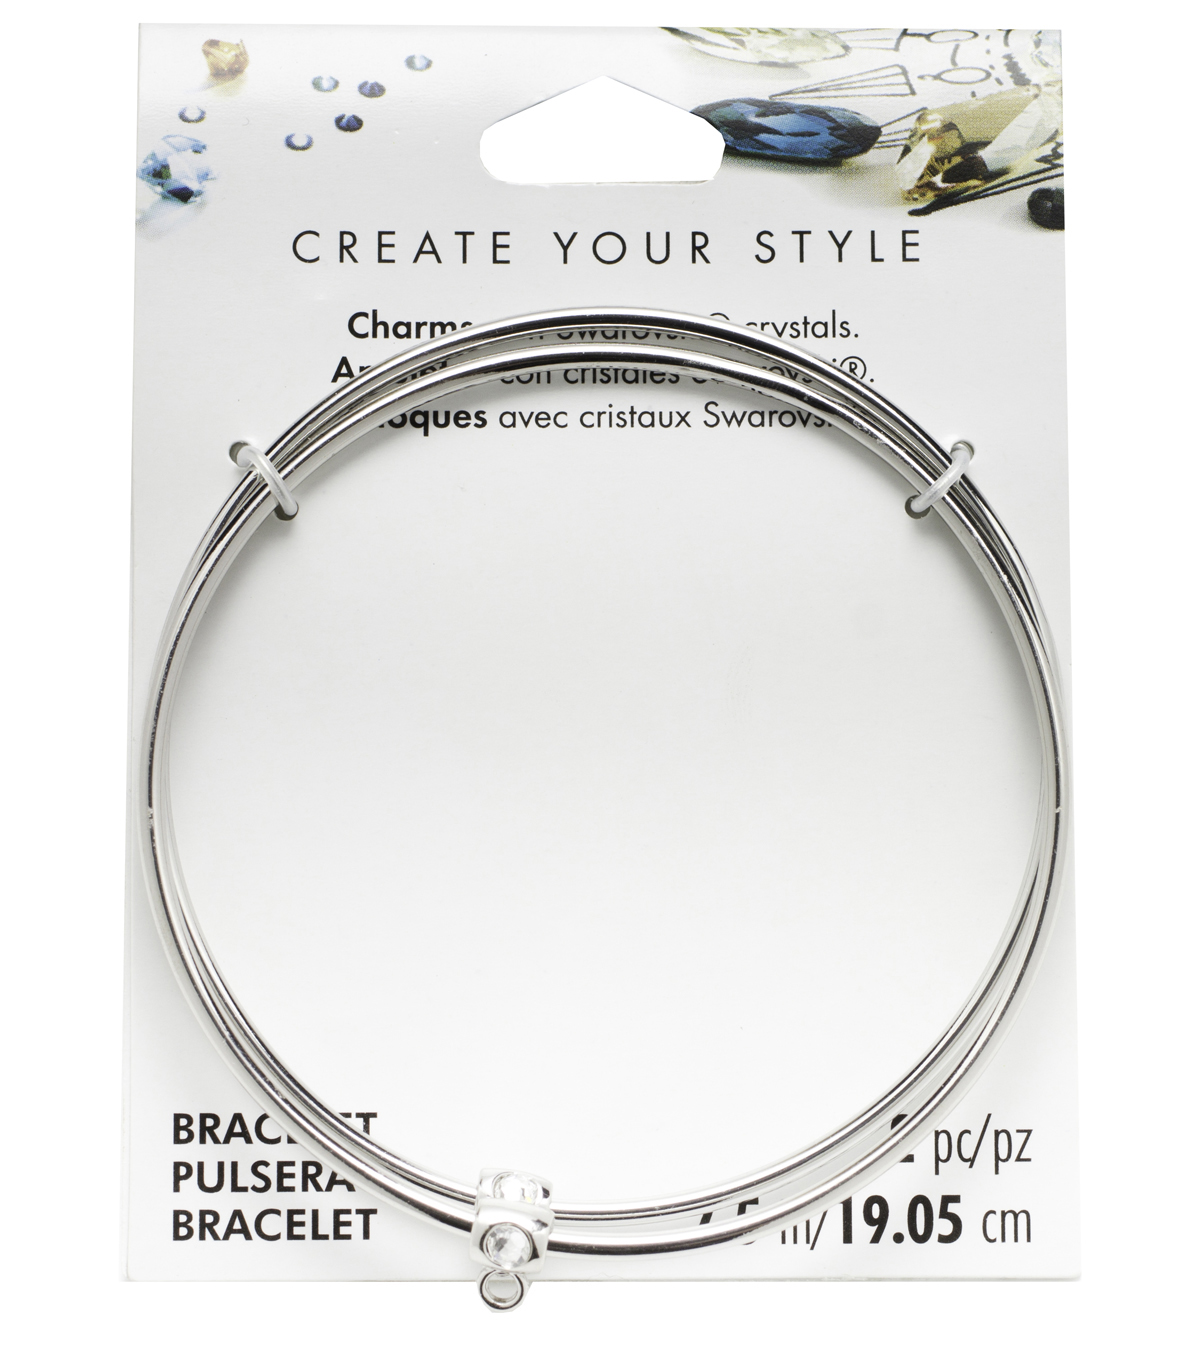 Swarovski Create Your Style 7.5\u0022 Bangle with Charms-Silver